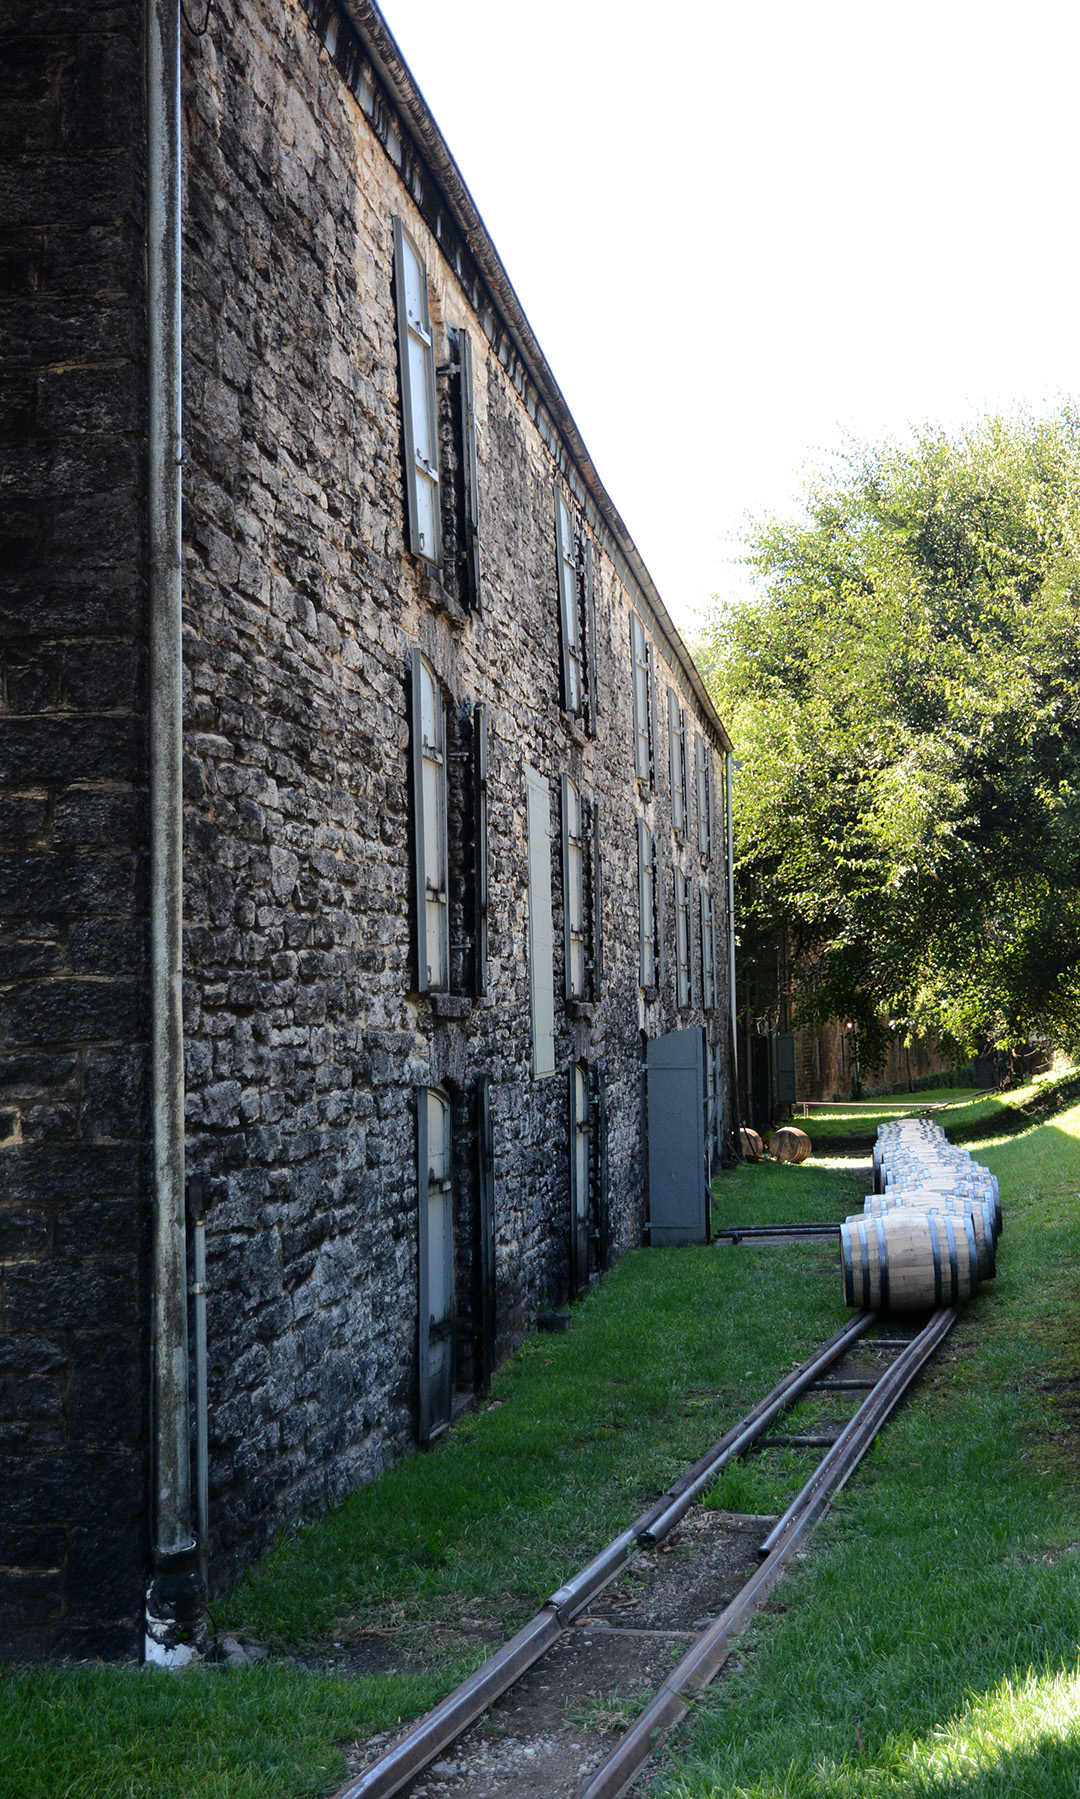 Woodford Reserve grounds where the barrels of bourbon are wheeled on train tracks into storage